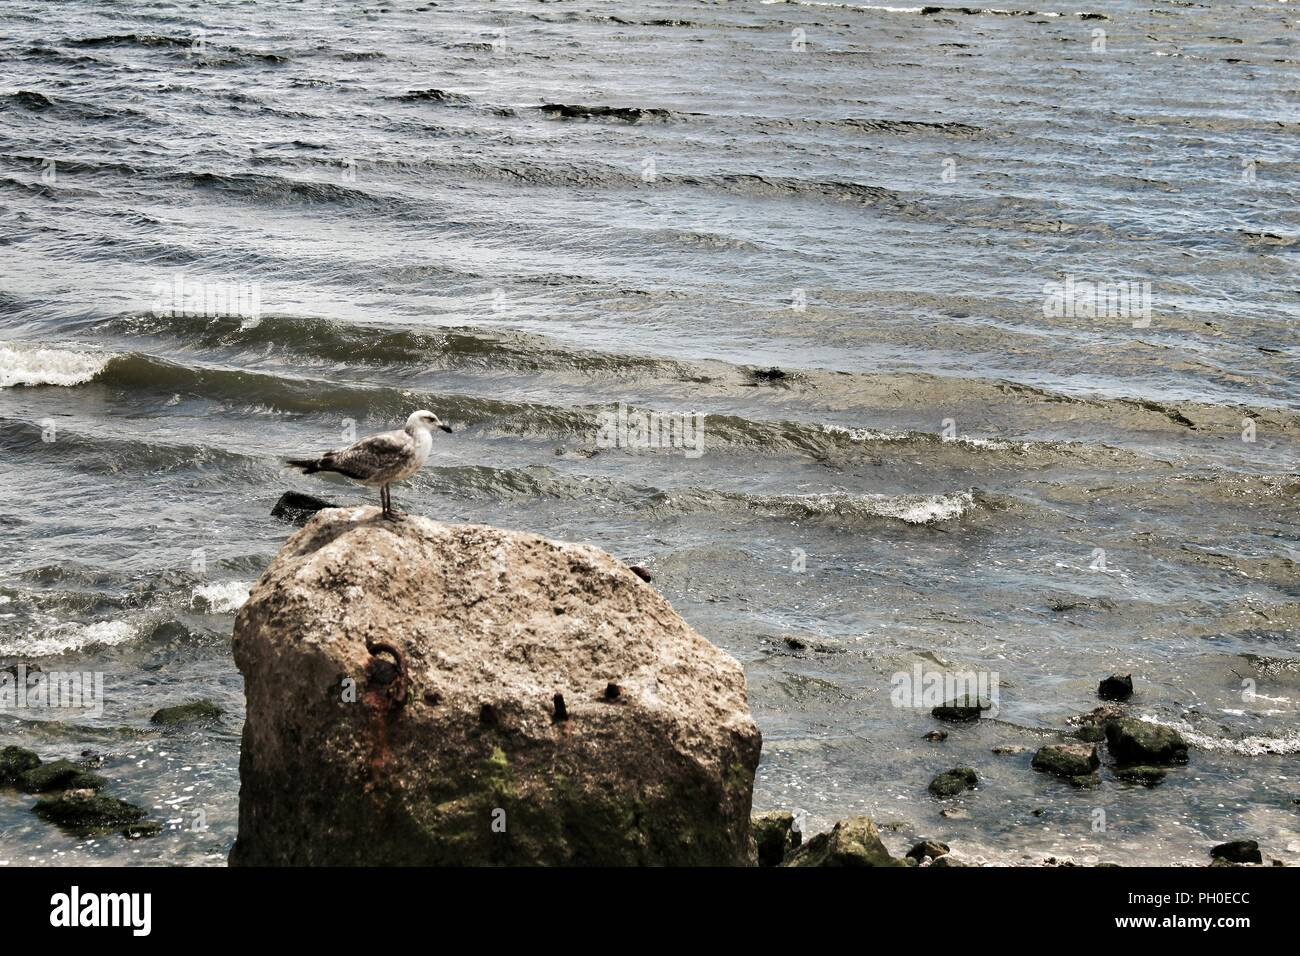 Seagull perched on a stone with algae on the bank of the Tagus River in Lisbon, Portugal Stock Photo